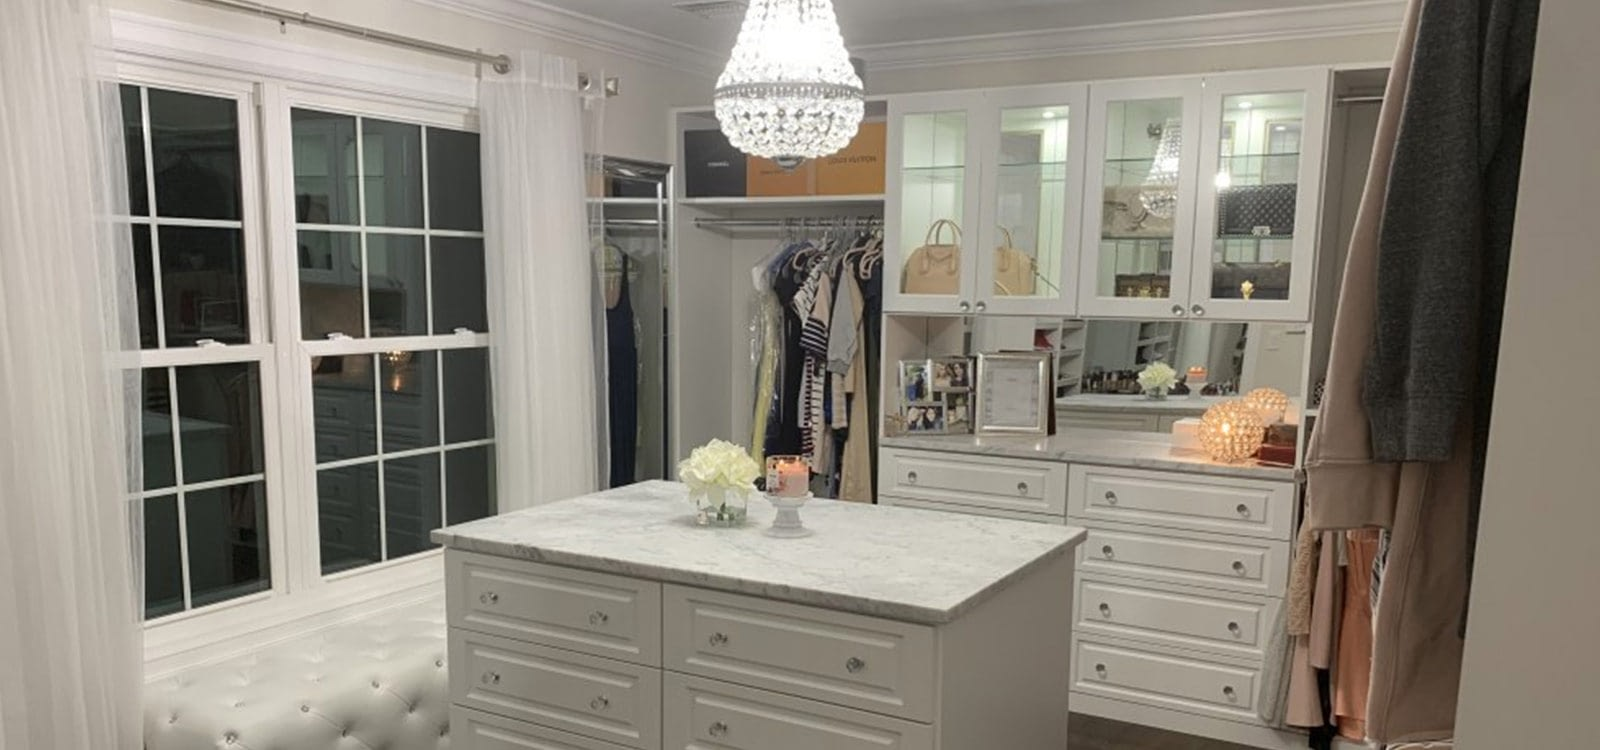 We offer Custom Closets and Storage Solutions in Long Island & New York